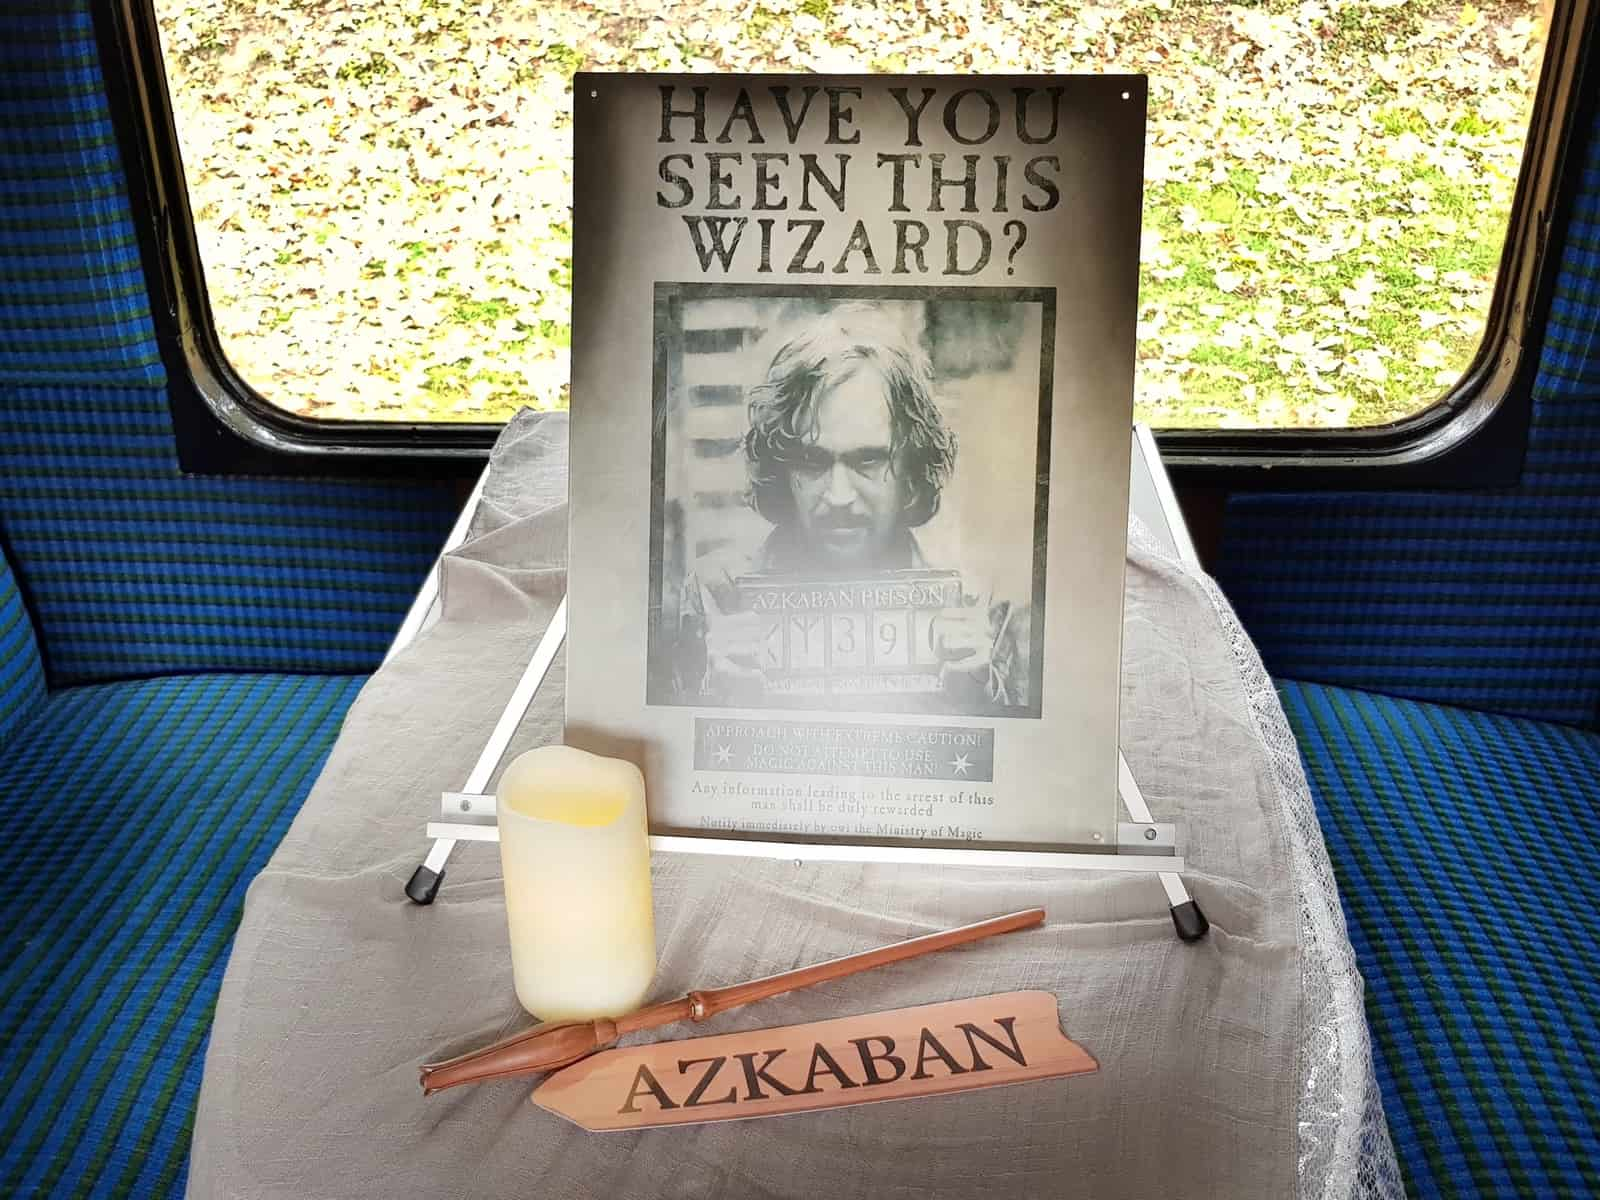 Watercress Line Azkaban wanted poster